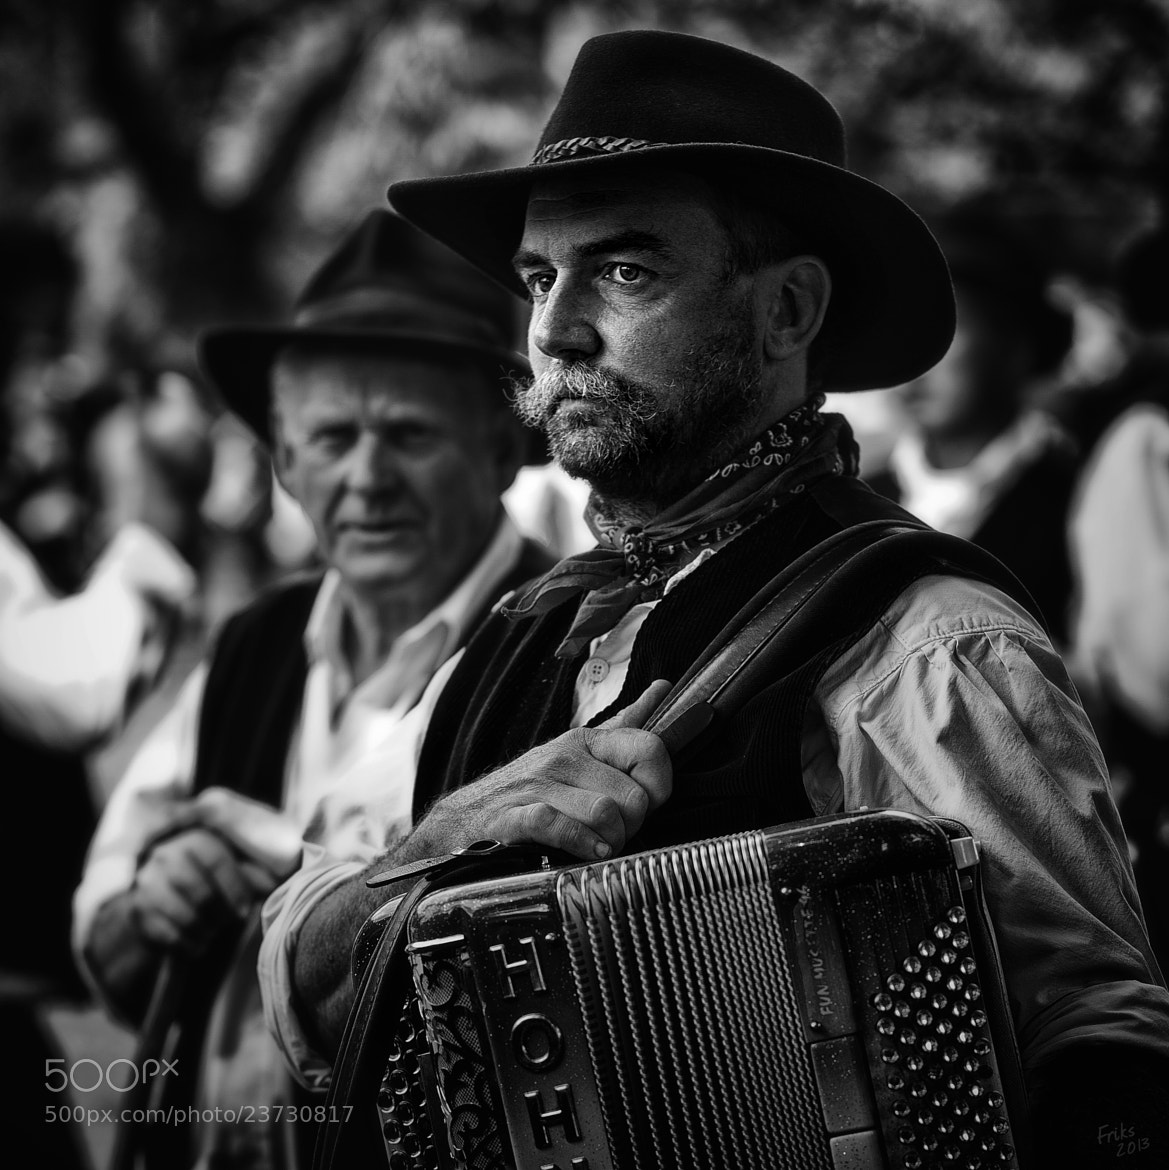 Photograph ACCORDION OF MOUNTAIN by Mr Friks on 500px